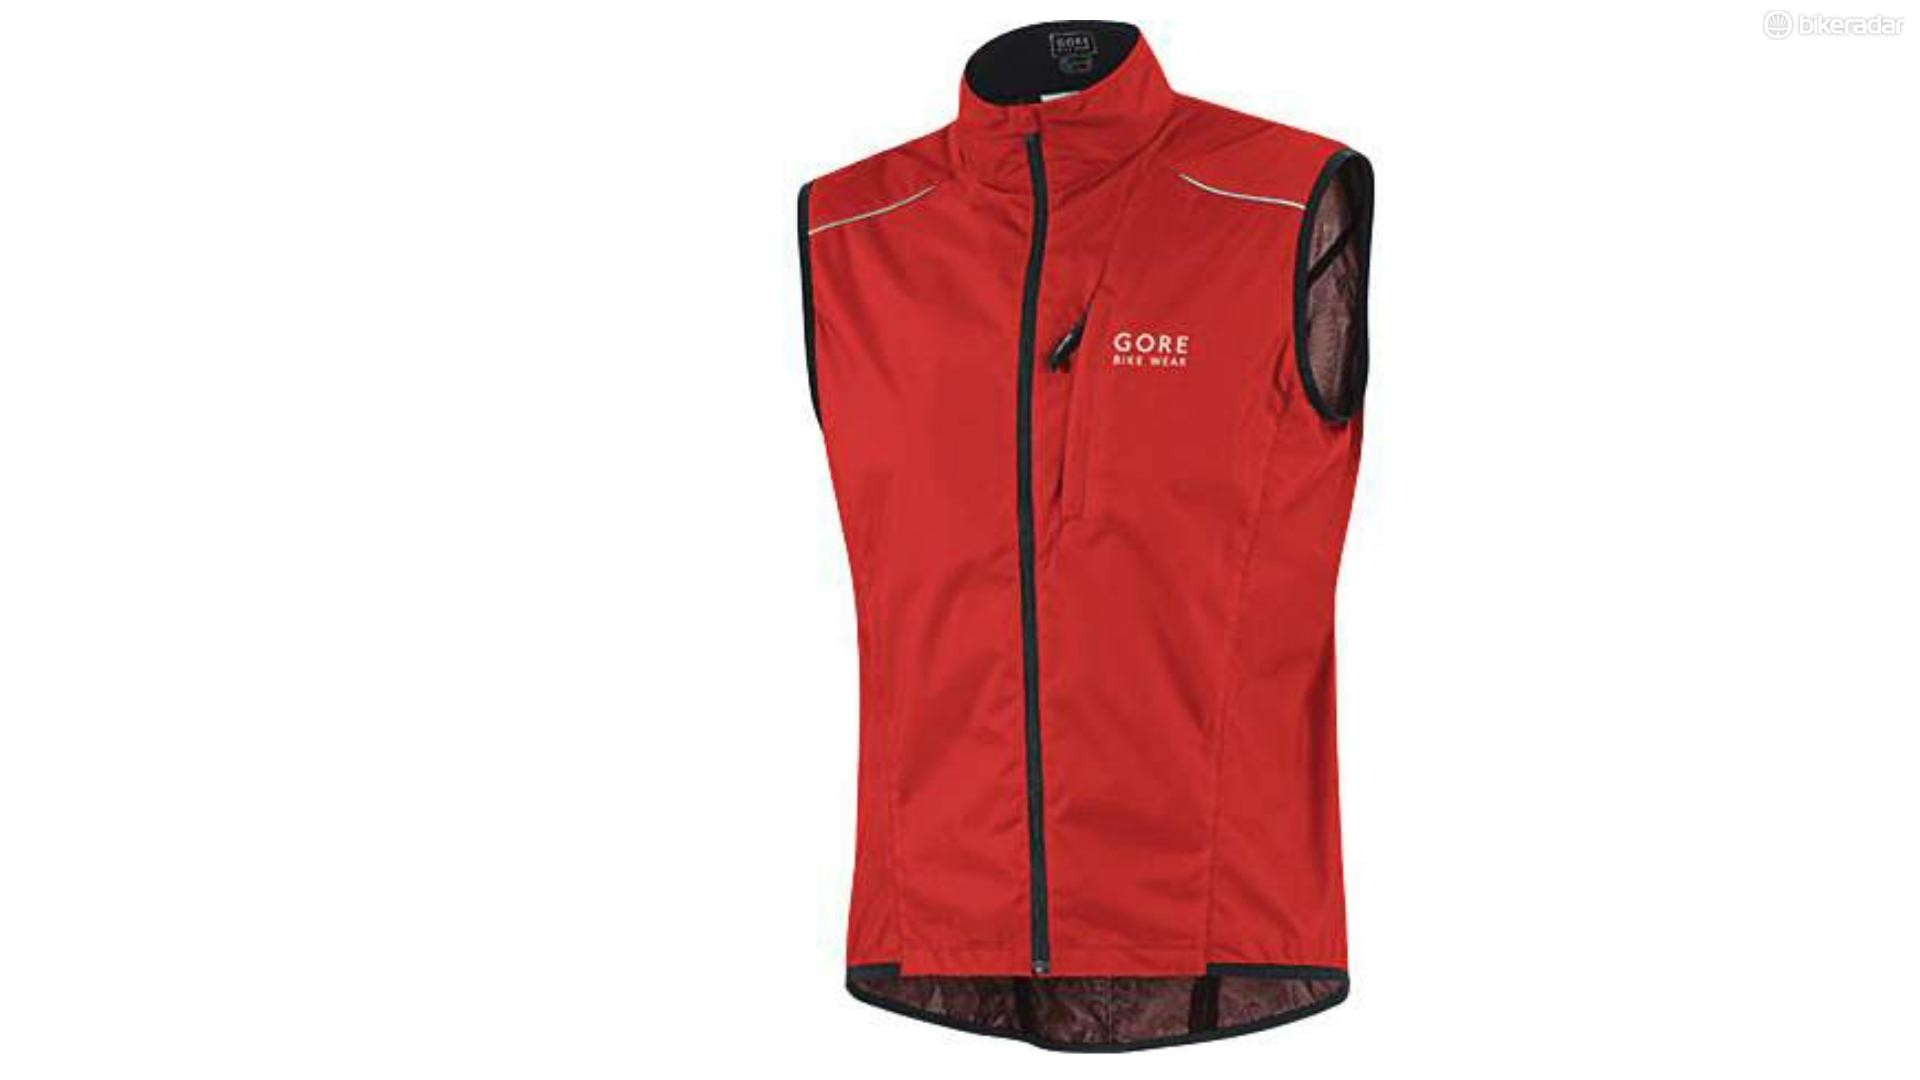 Gilets are perfect for when it's too warm for a full jacket, but too cold to not wear an outer layer